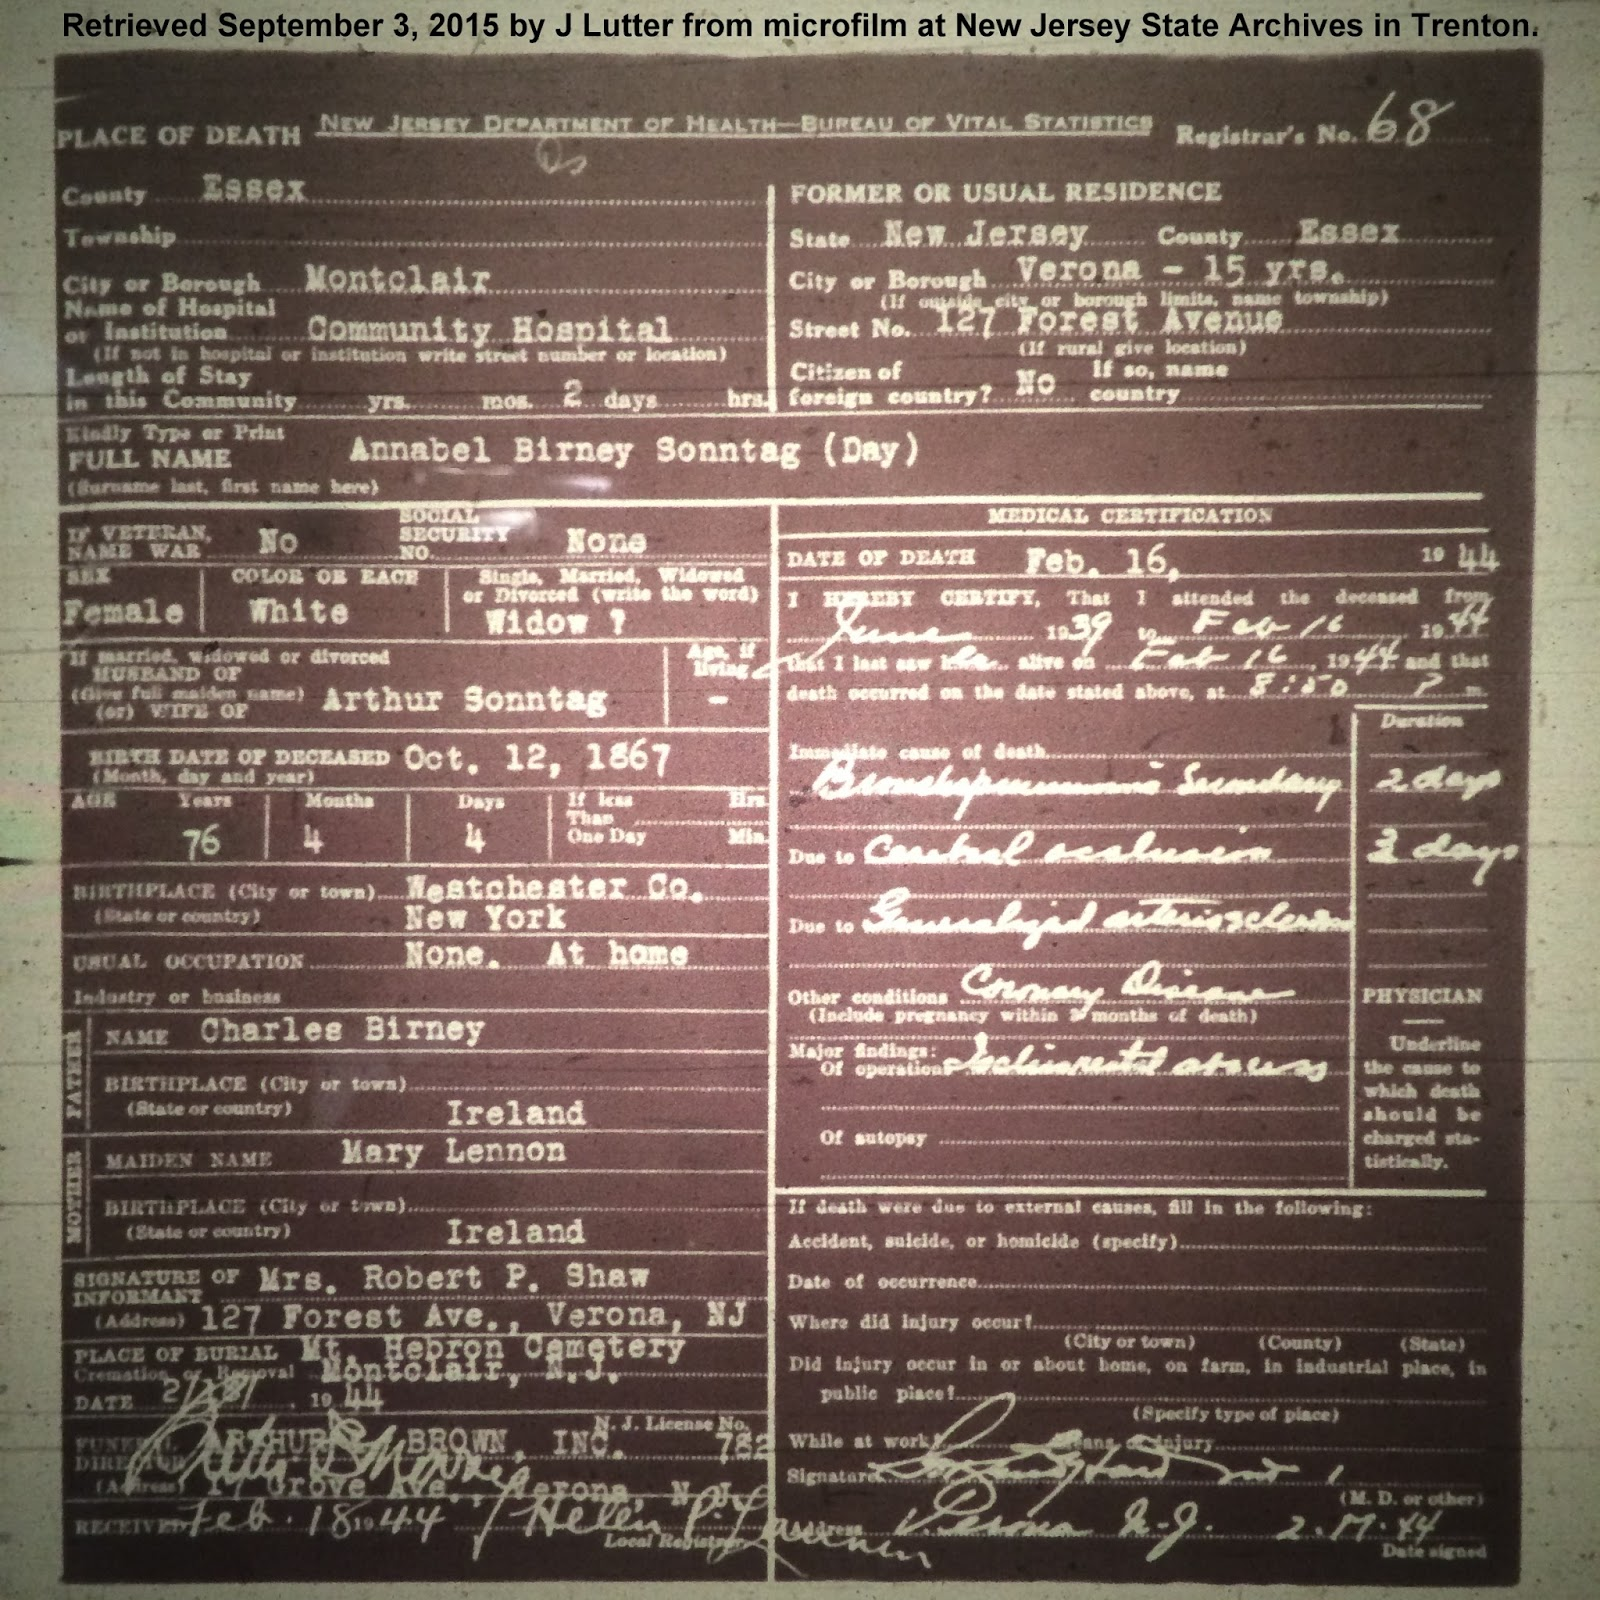 Family history research by jody nyc marriage records 1908 1929 annabels entry in the 1910 census is elusive she may have been living with arthur sonntag in new york city aiddatafo Gallery